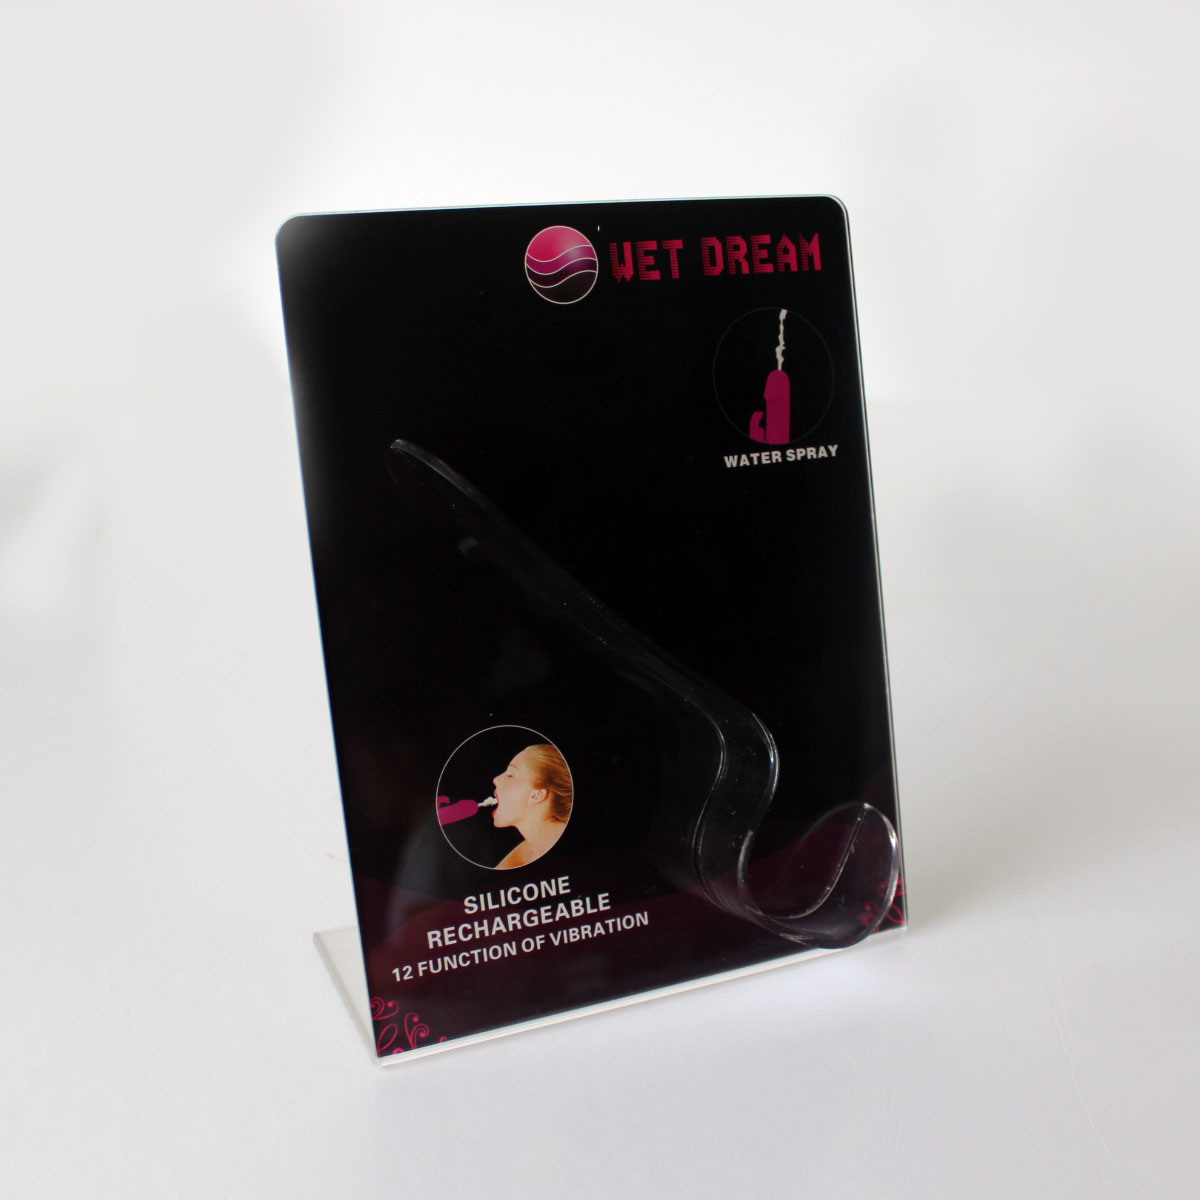 Adult Products of Acrylic Display, Acrylic Sextoy Holder